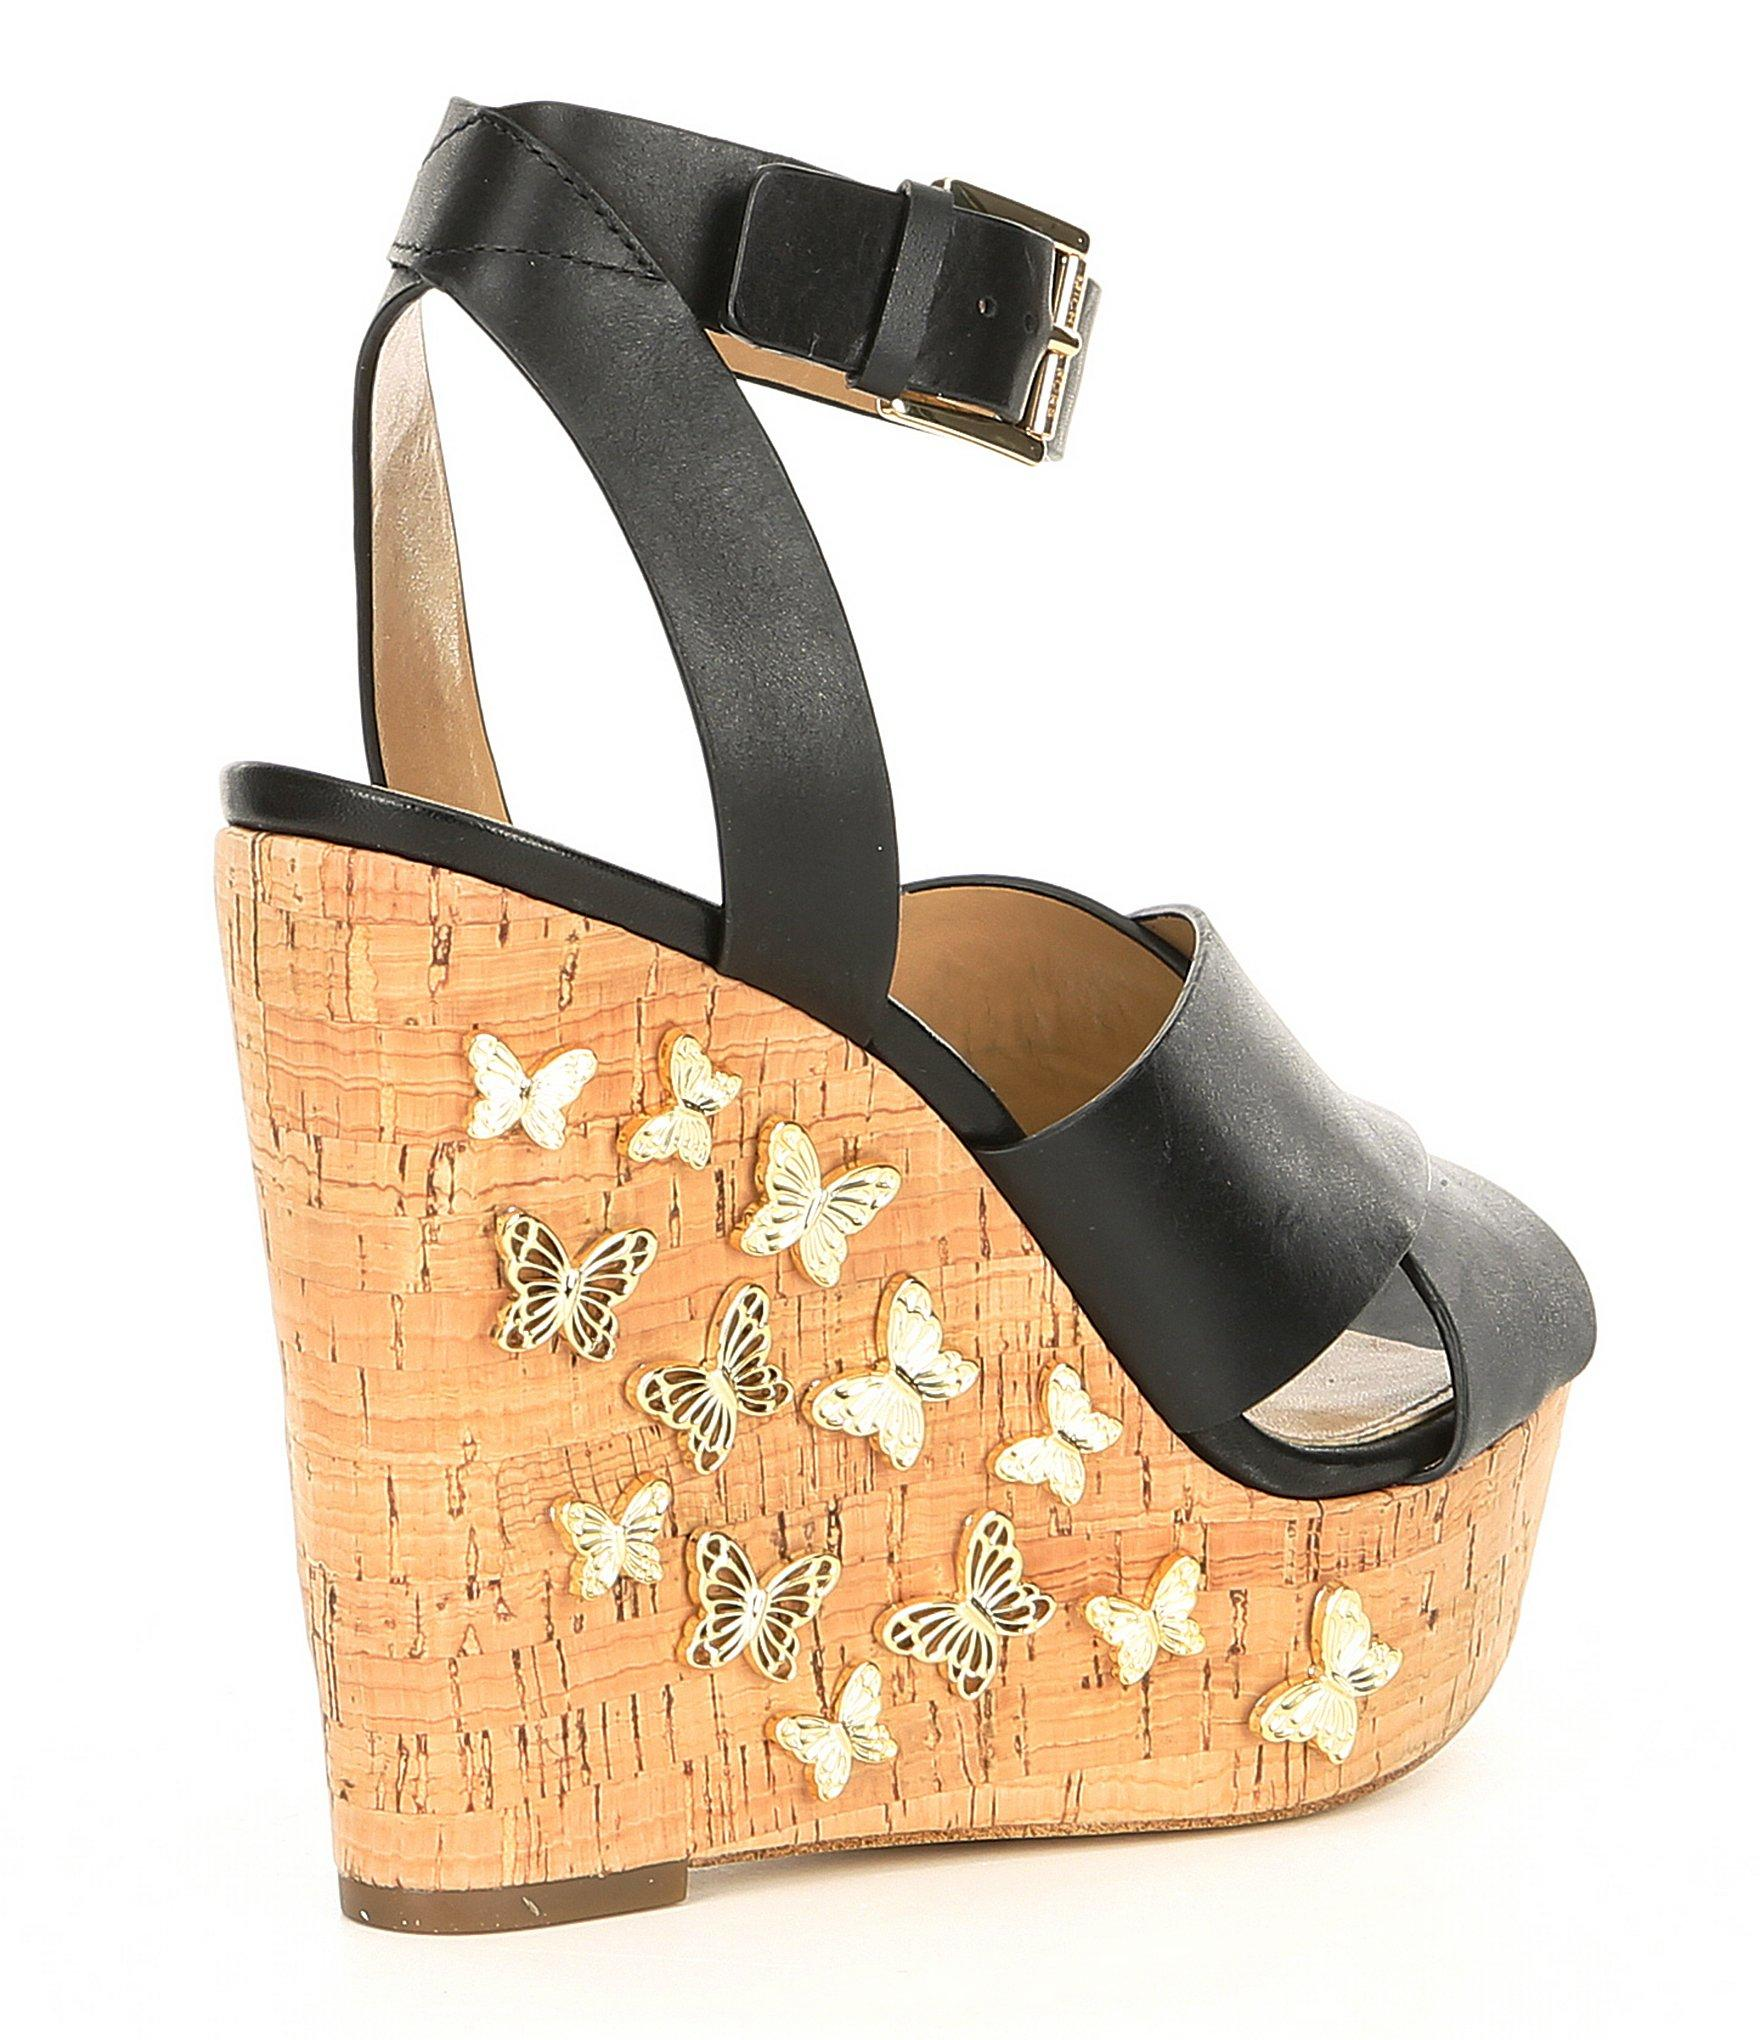 407cdc9b82e MICHAEL Michael Kors - Black Lacey Leather   Butterfly Charm Cork Wedge  Sandals - Lyst. View fullscreen